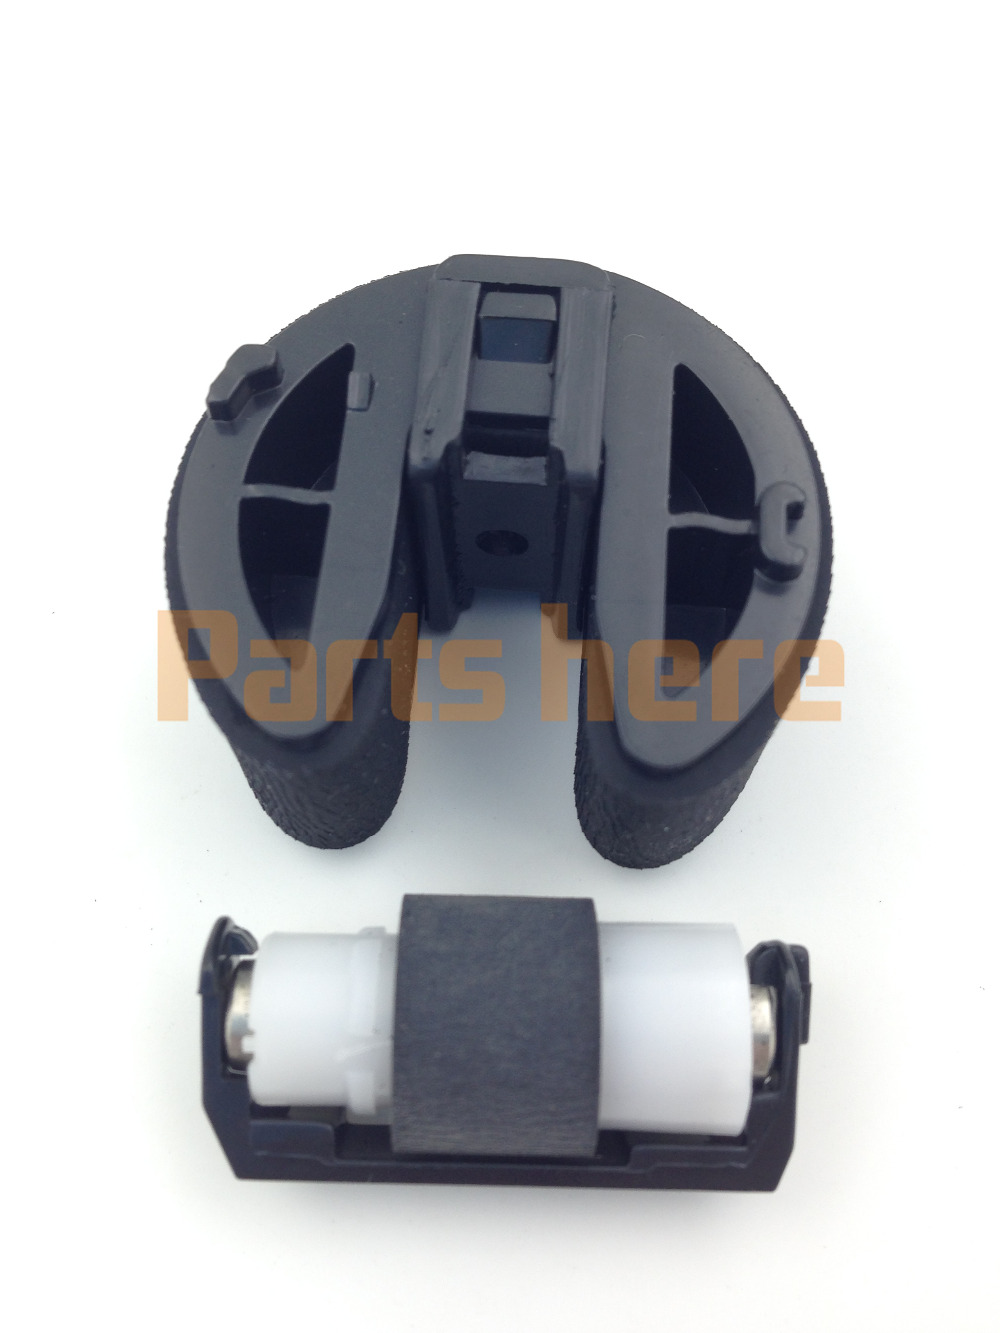 CC430-67901 RM1-4425 RM1-8765 RM1-4426 Pickup Roller Assembly for HP CM1312 CM2320 CP2025 CP1215 CP1515 CP1518 CM1415 CP1525 10x pickup roller for xerox 3115 3116 3119 3121 for samsung ml 1500 1510 1520 1710 1710p 1740 1750